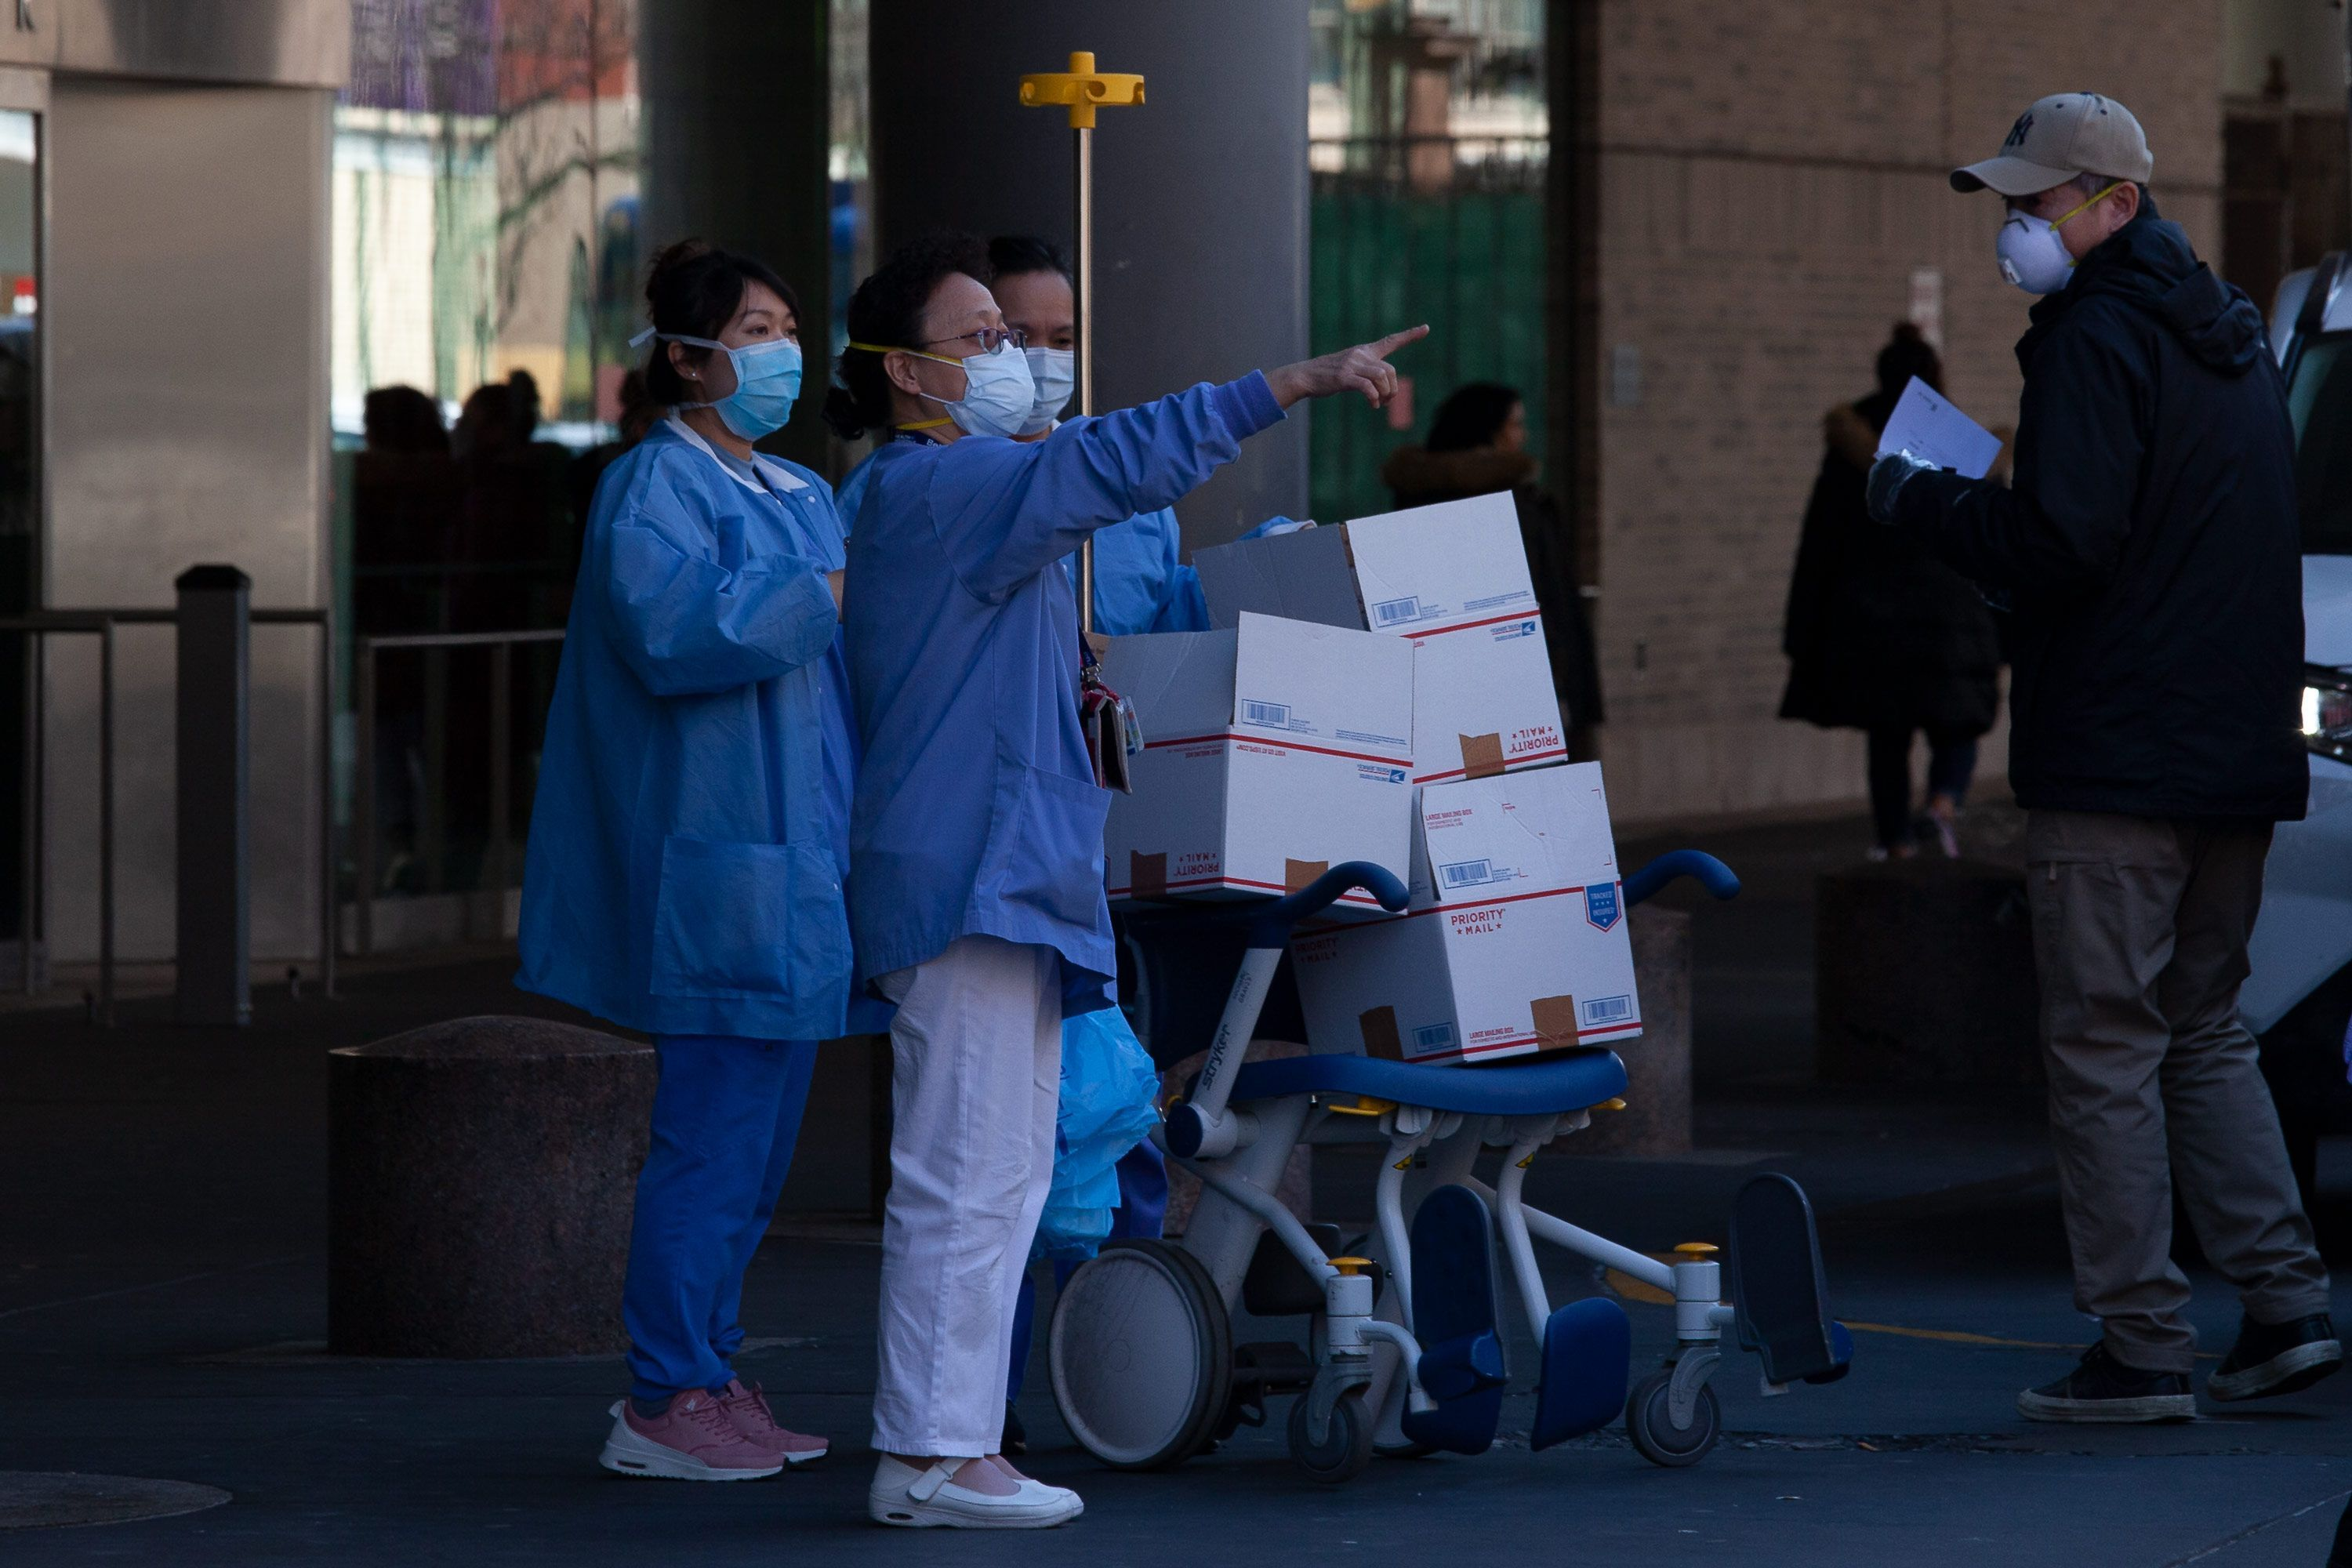 Bellevue Hospital workers accept several packages during the coronavirus outbreak.